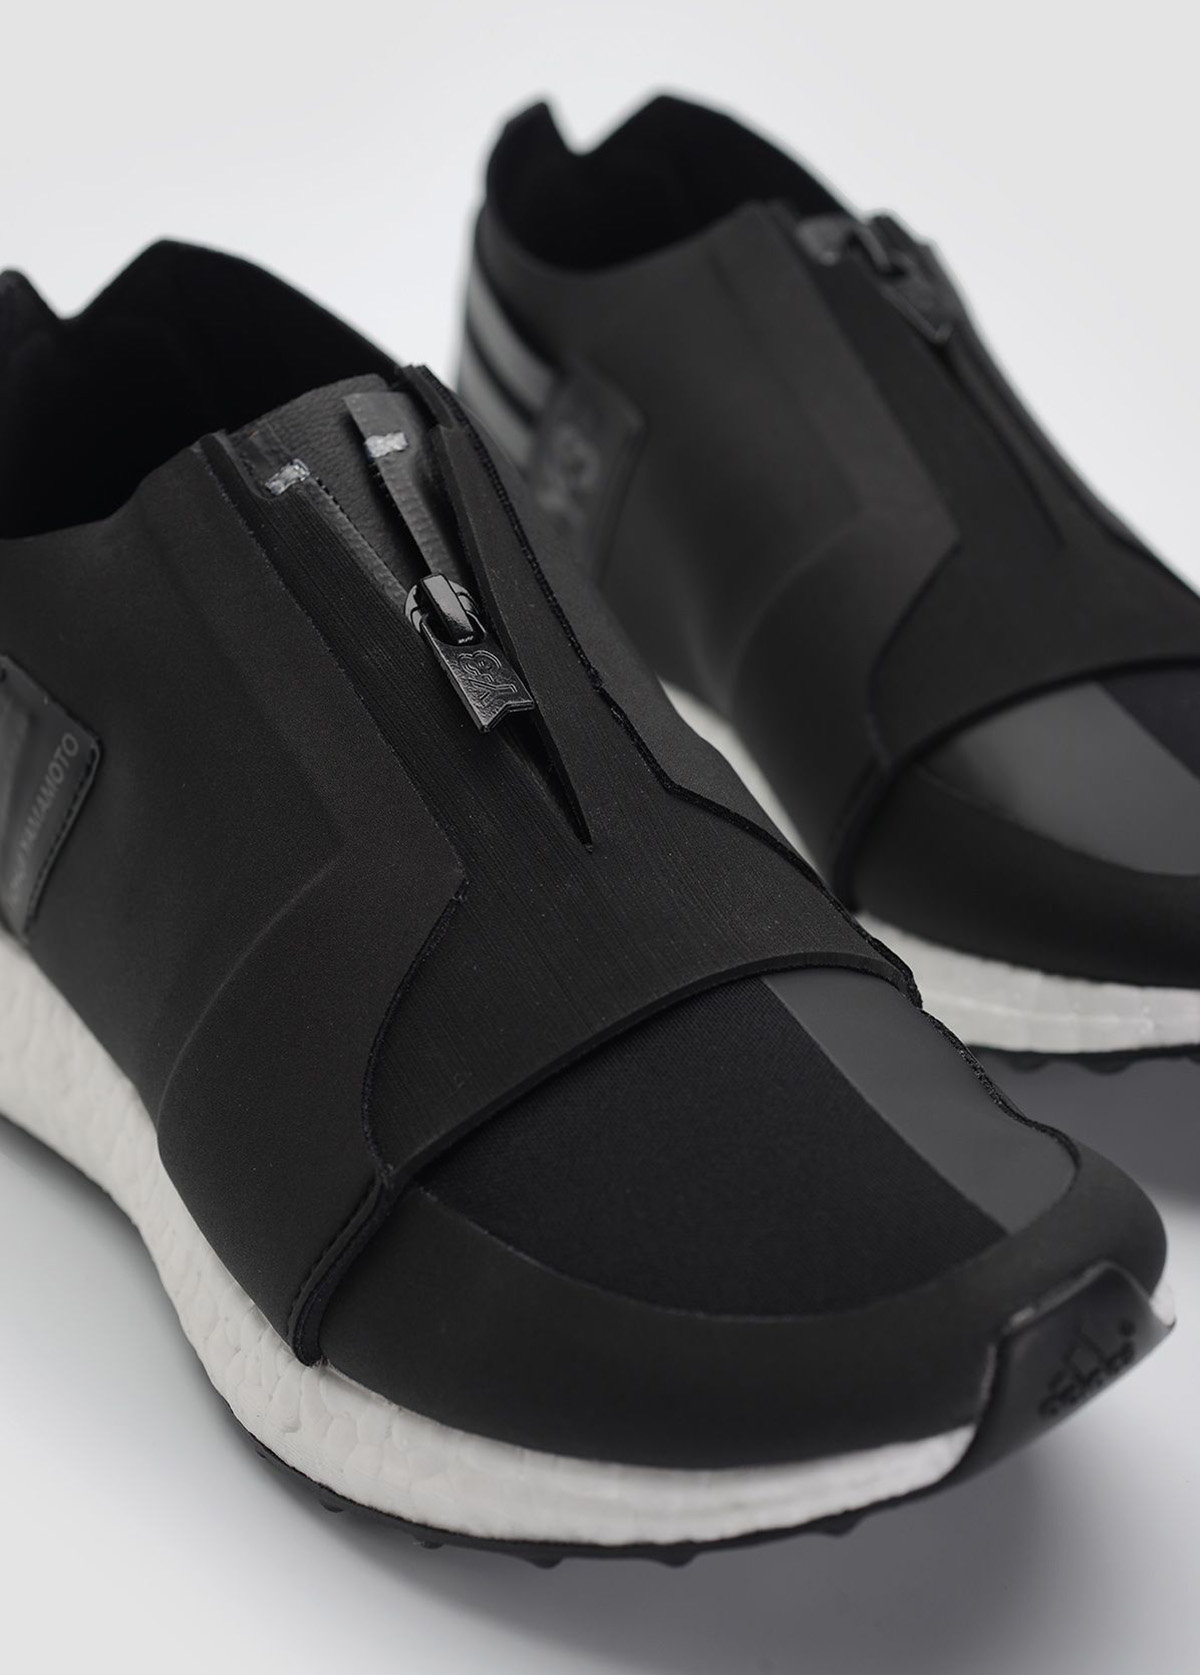 y3-xray-zip-low-boost-core-black-3